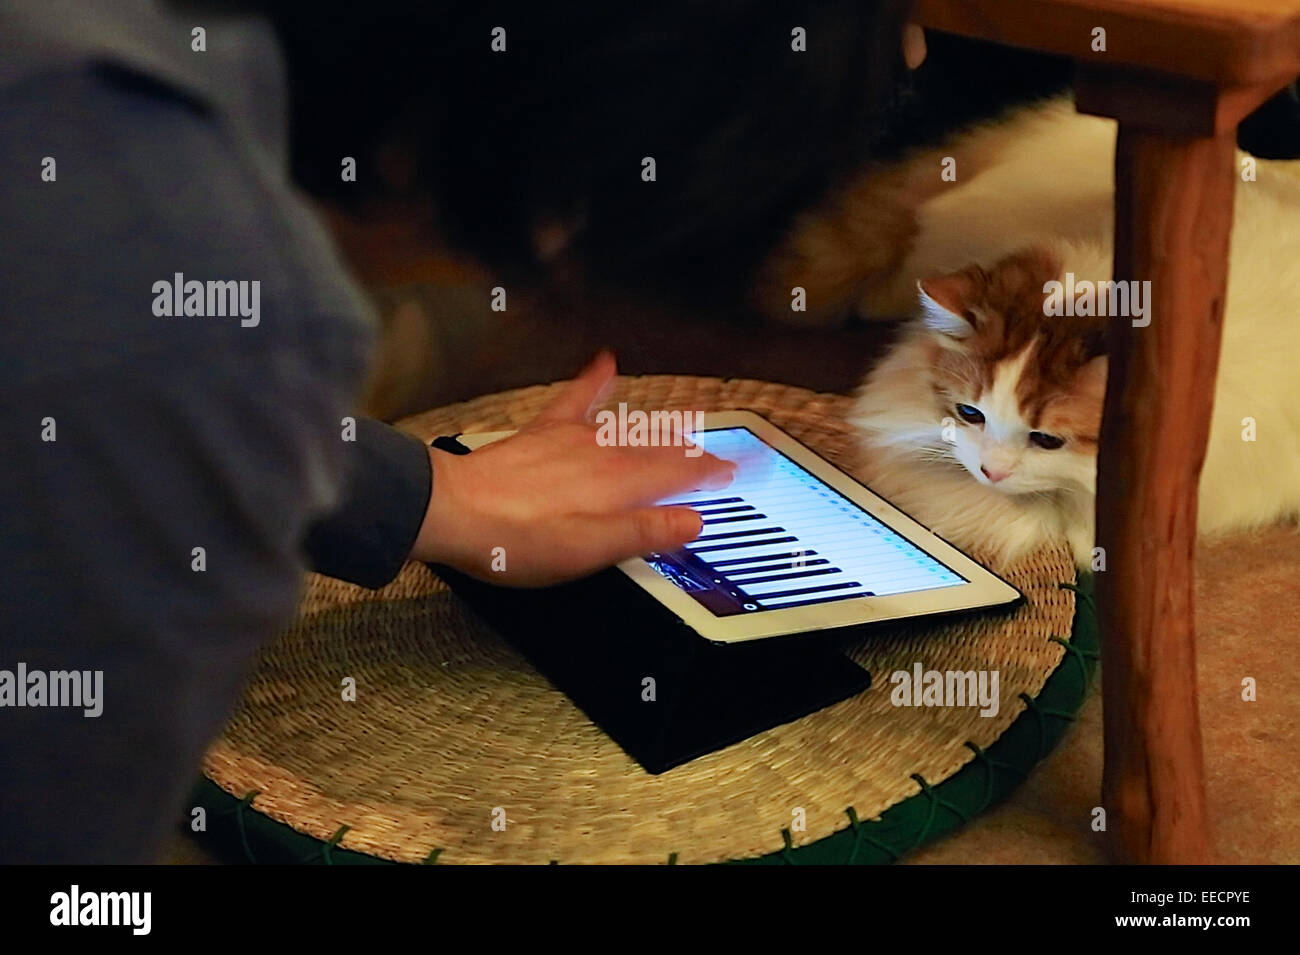 Tokyo, Japan. 15th January, 2015. A customer plays with a cat at the 'Temari No Uchi' Cat Cafe in Tokyo, - Stock Image